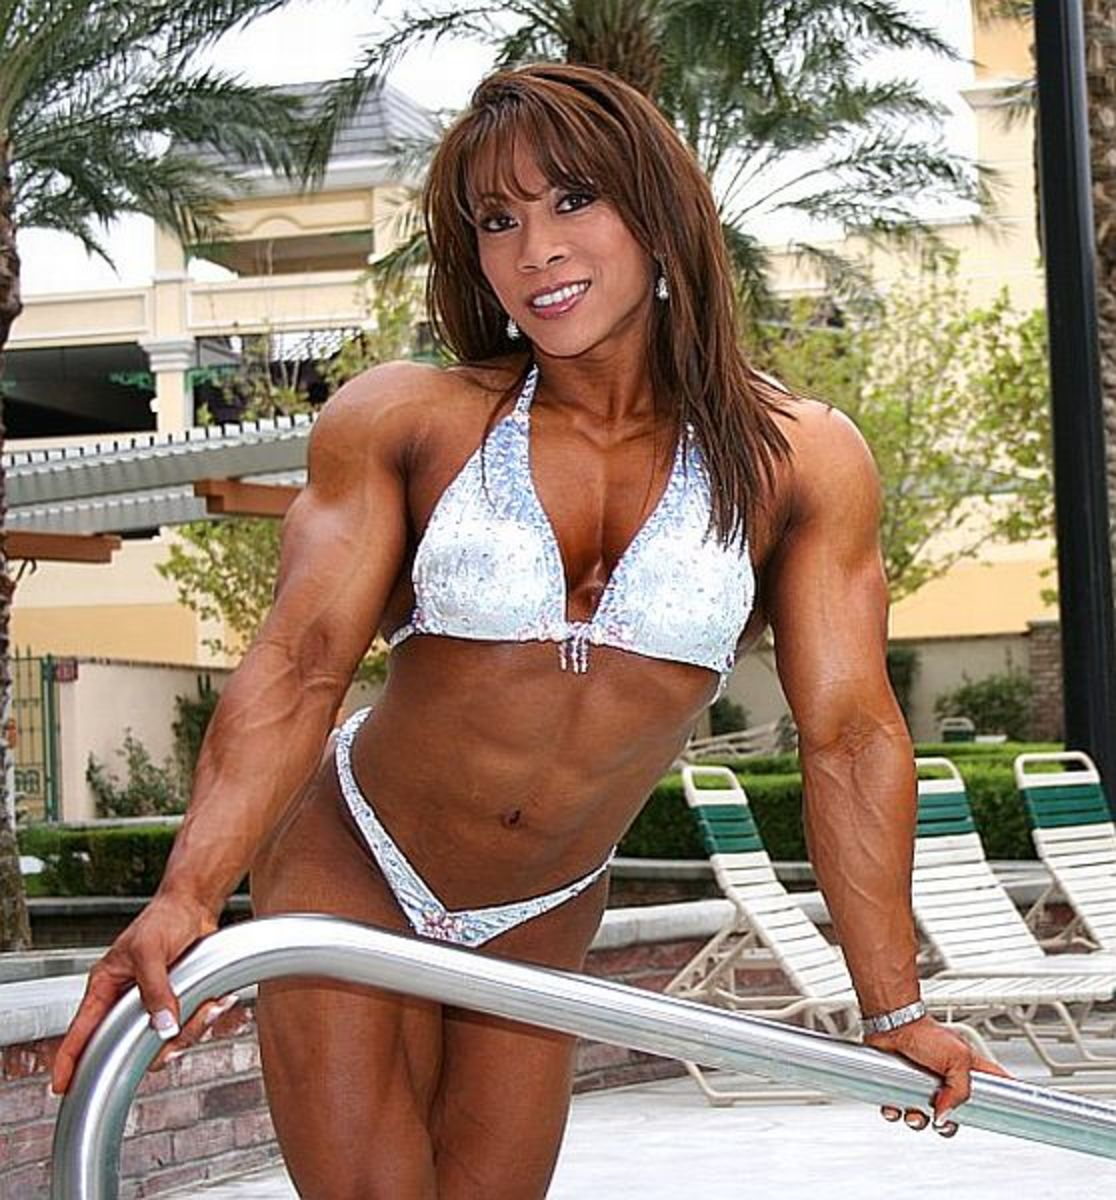 Brenda Raganot - Asian Female Bodybuilder (physique art inc)